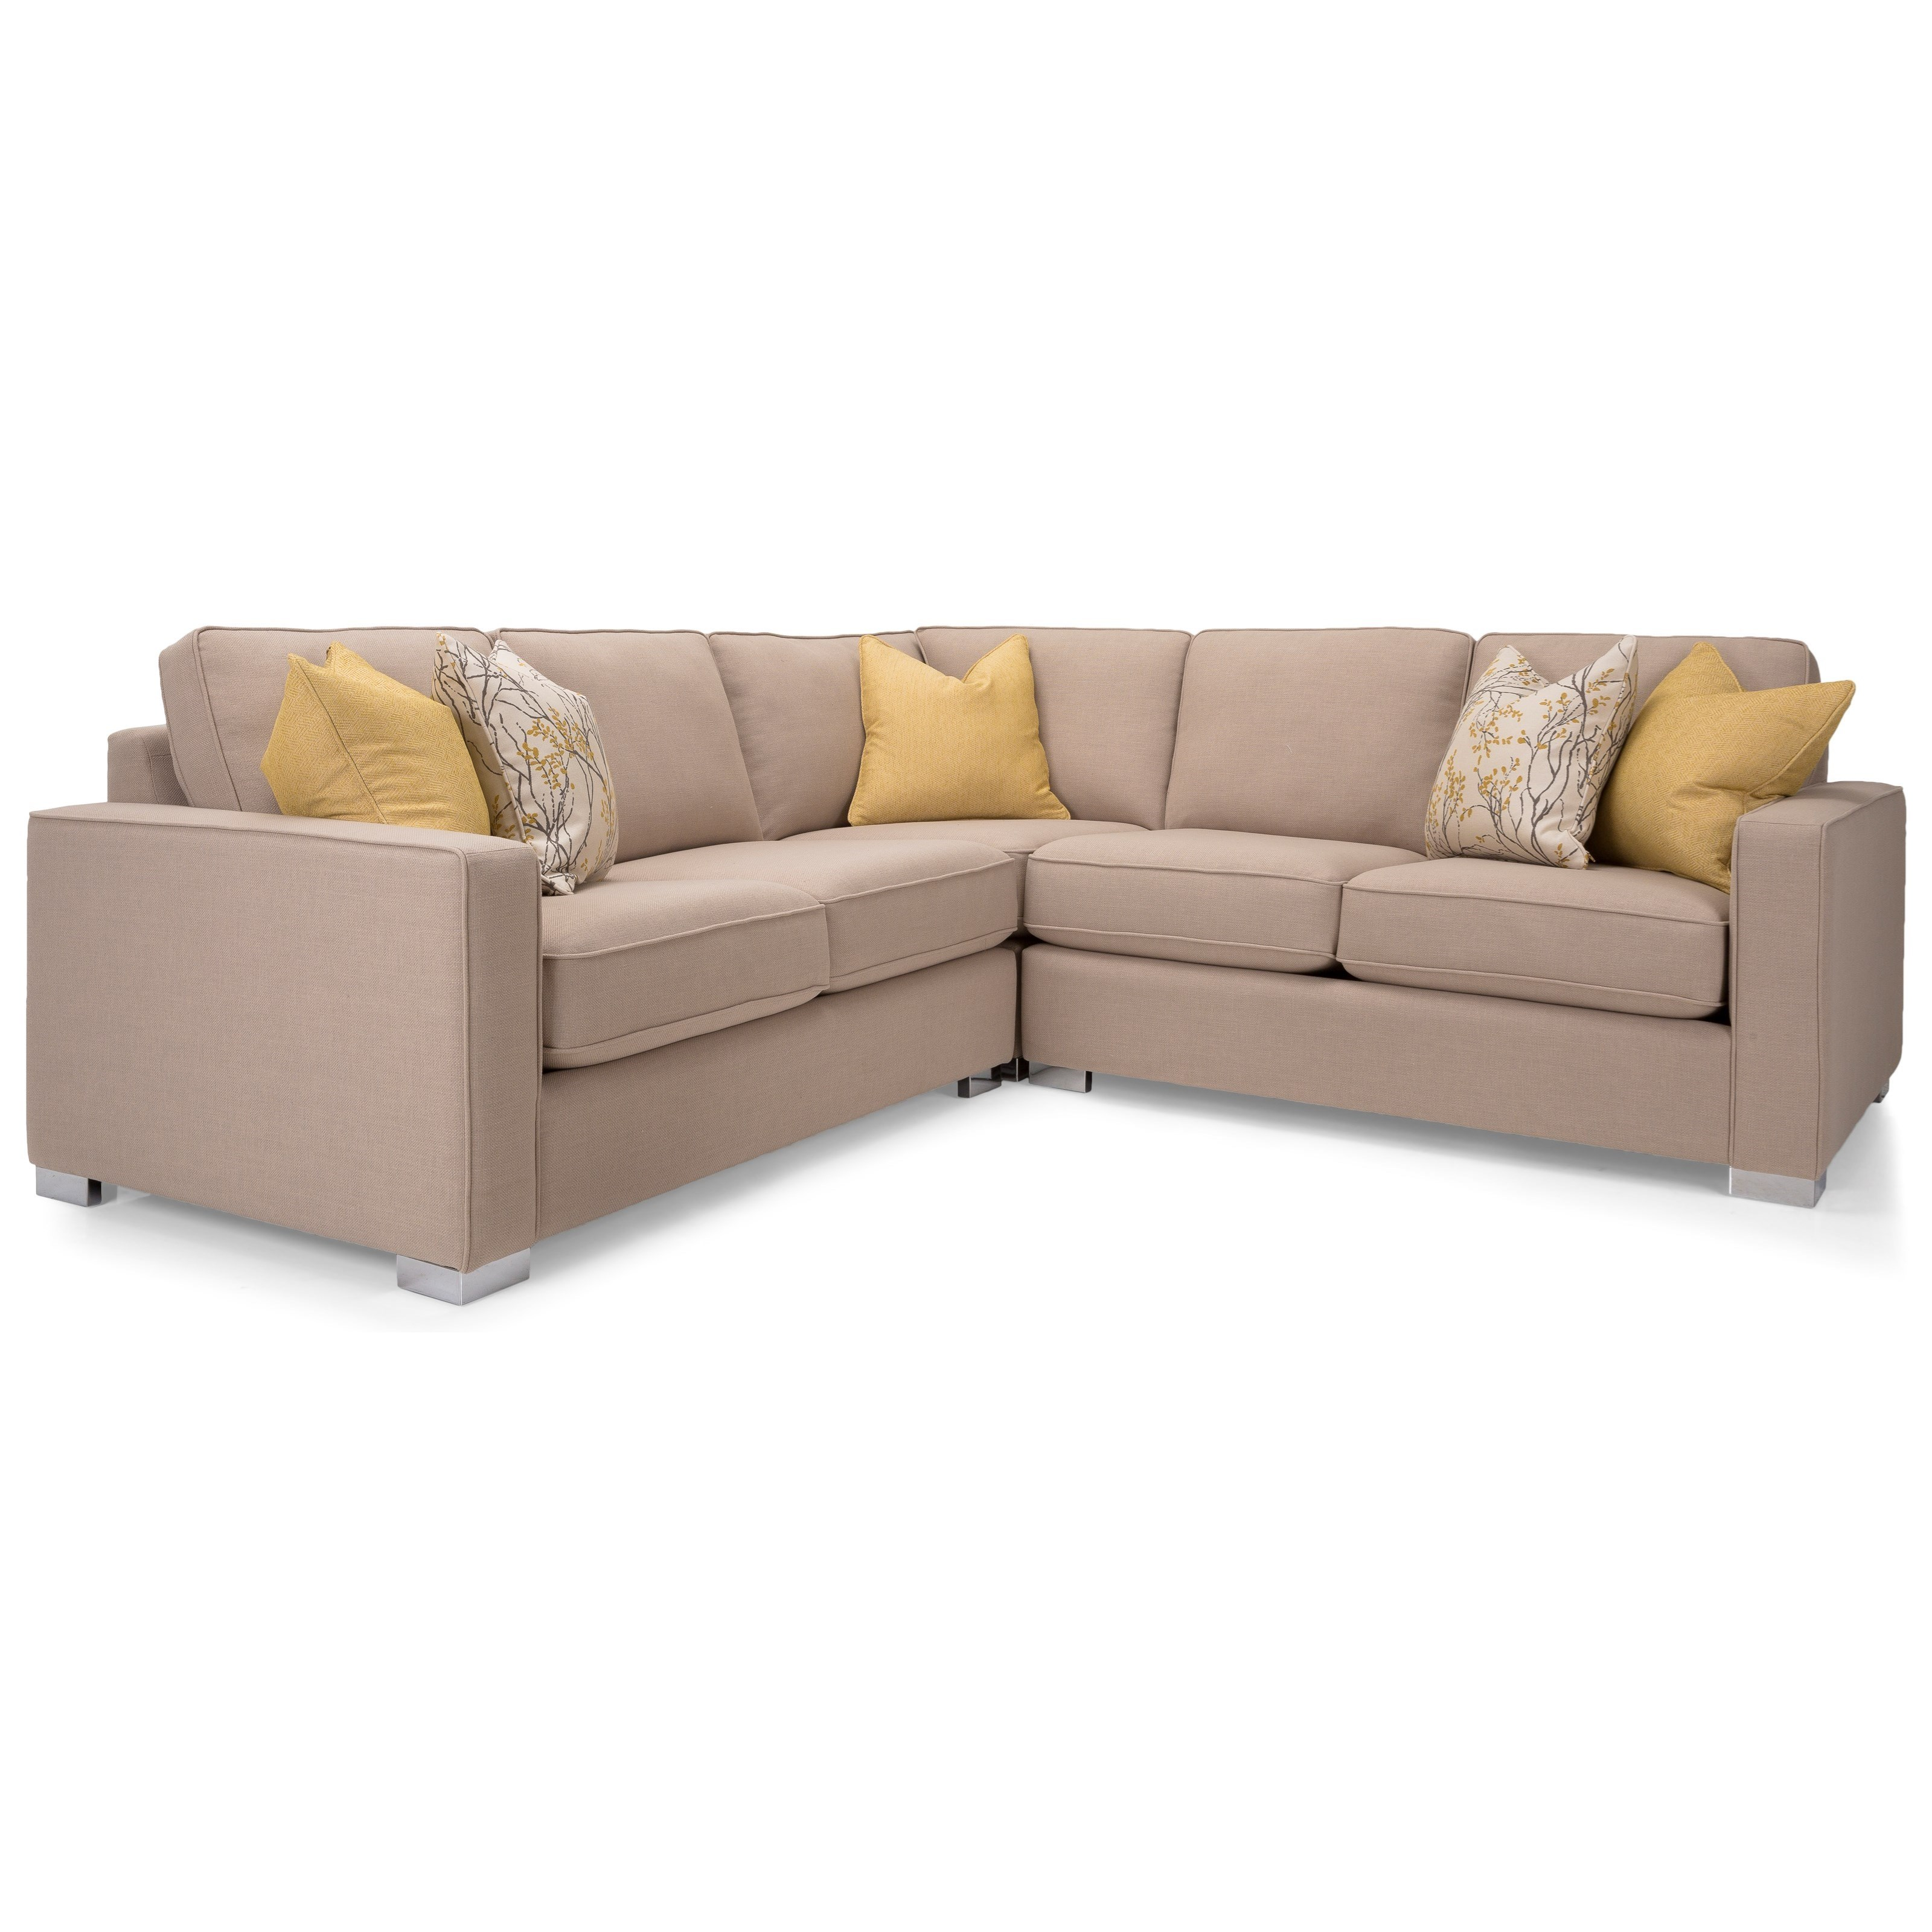 Decor-Rest 7743 3 Pc Sectional Sofa - Item Number: 7743-05+06+07-Beige